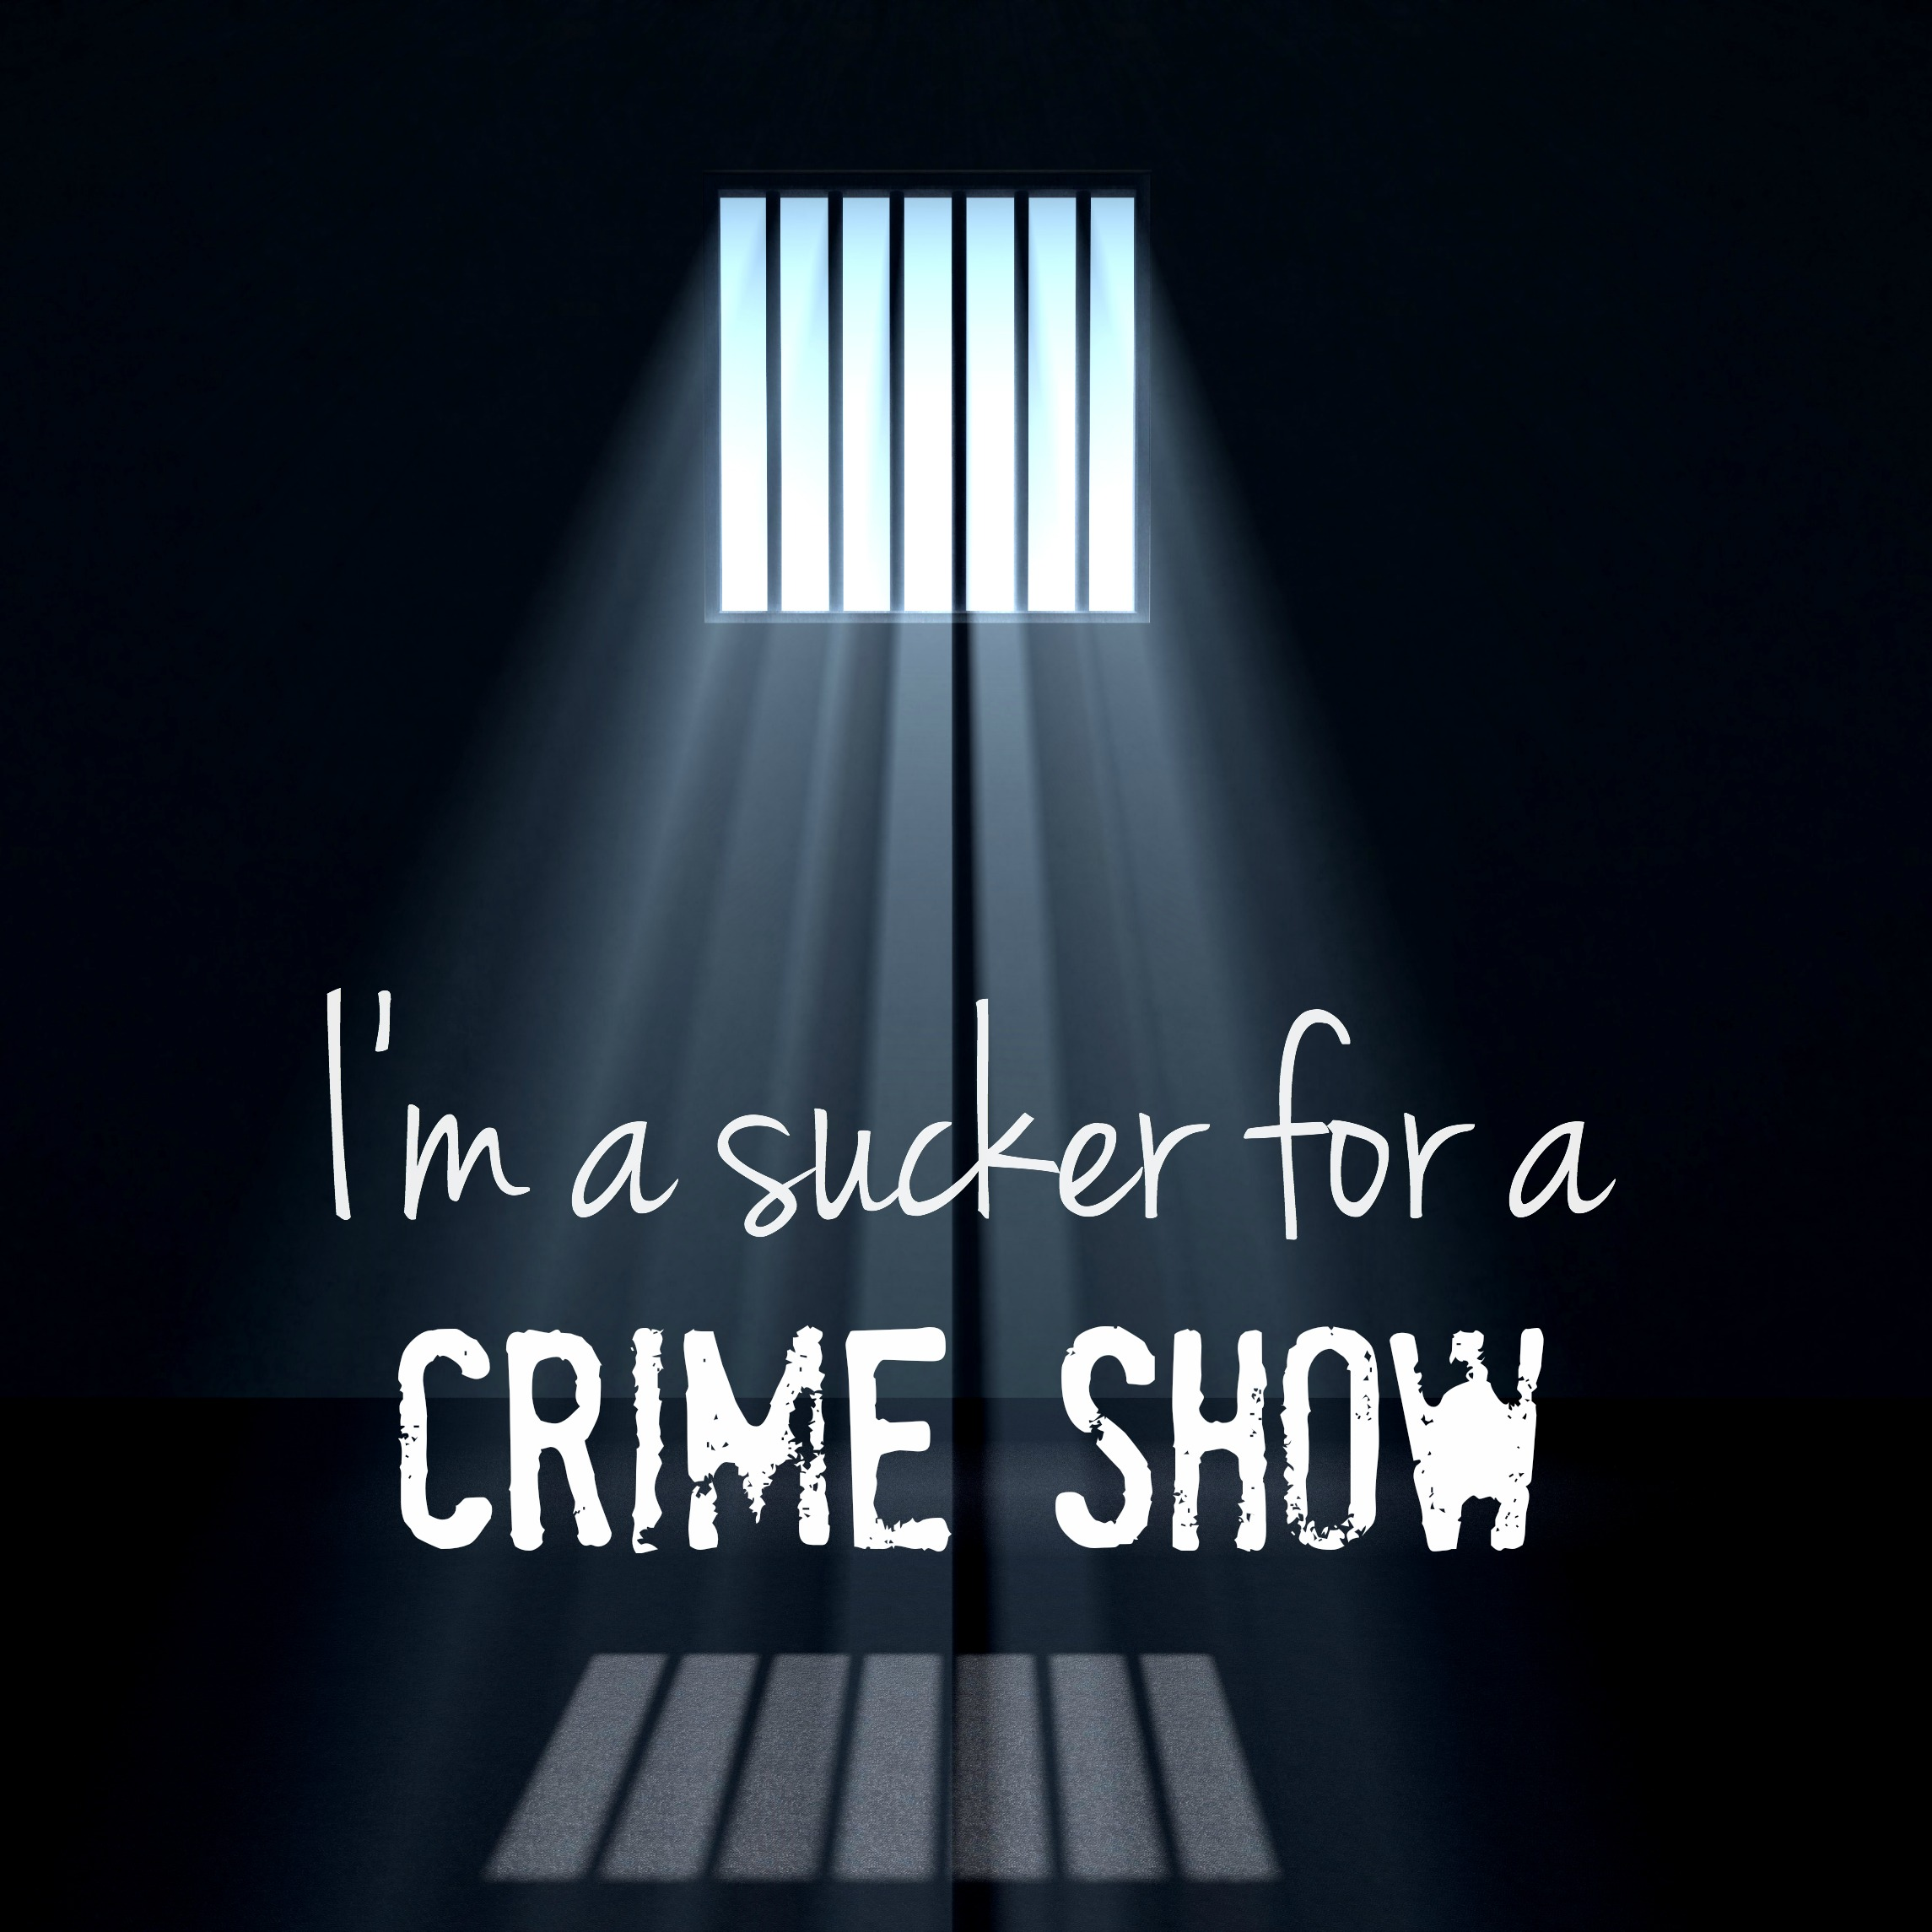 I'm A Sucker For A Crime Show